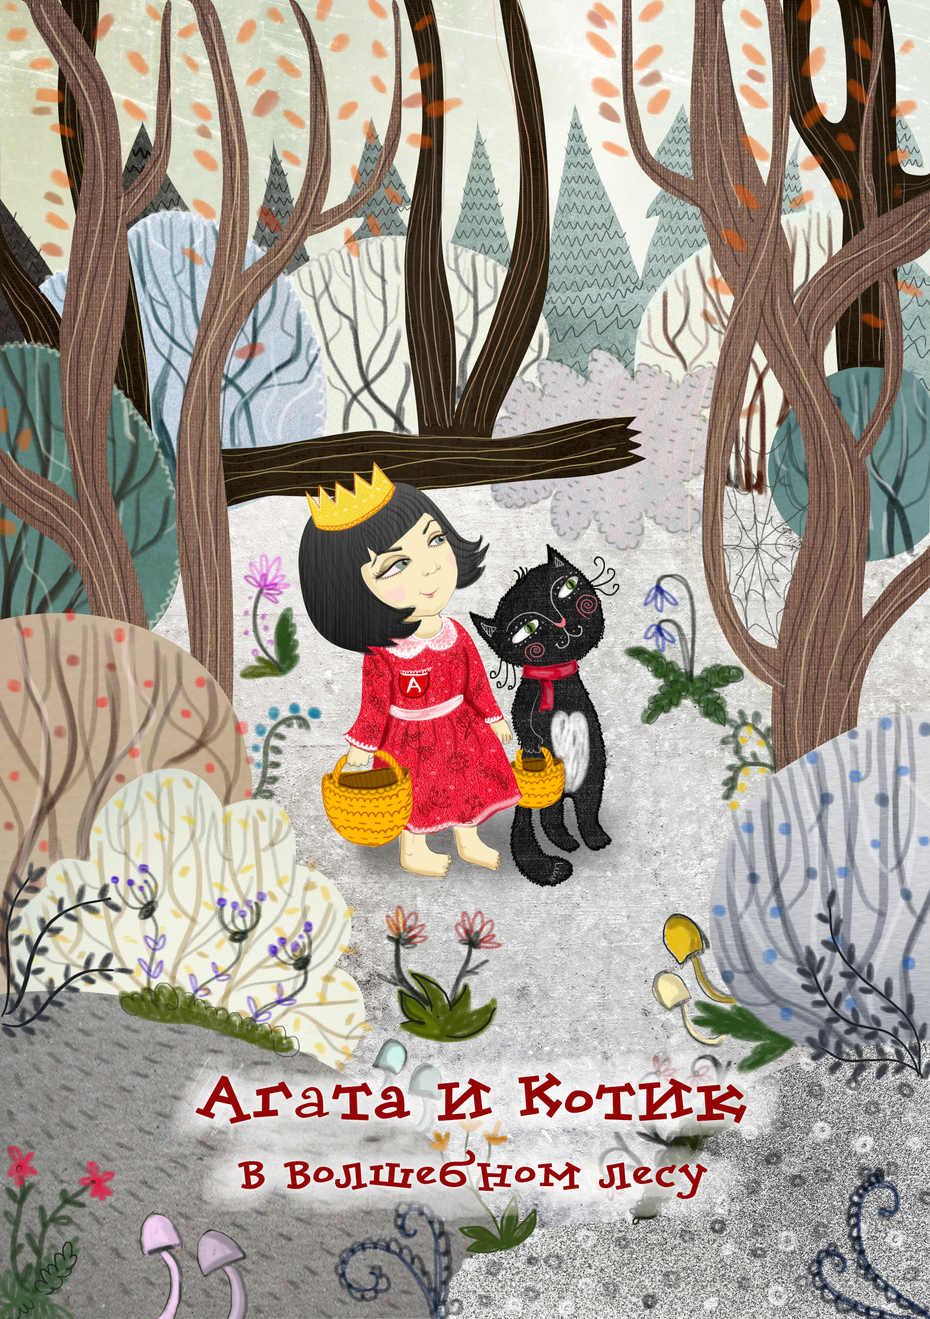 Children's book cover illustration featuring a girl and cat character design